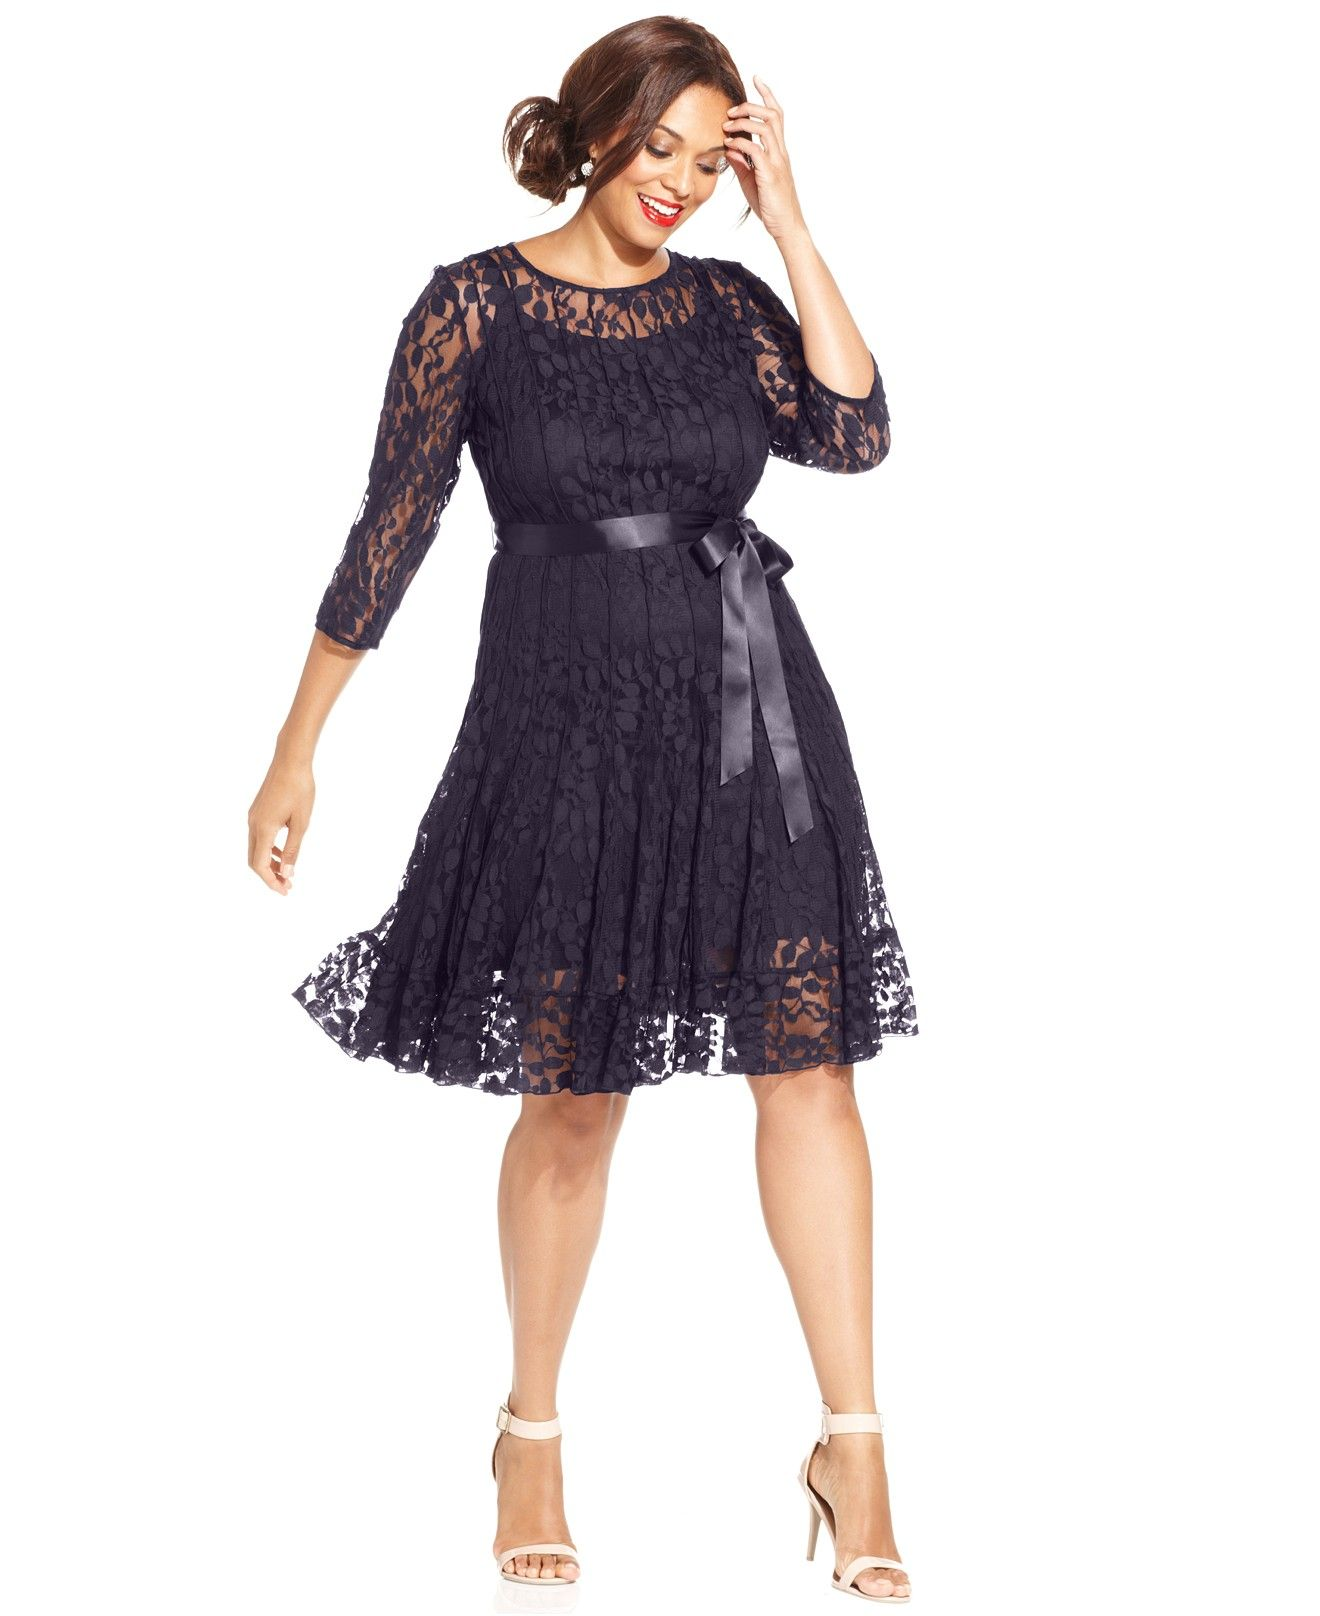 71c5a1f867c MSK Plus Size Illusion Floral Lace Dress - Dresses - Plus Sizes - Macy s